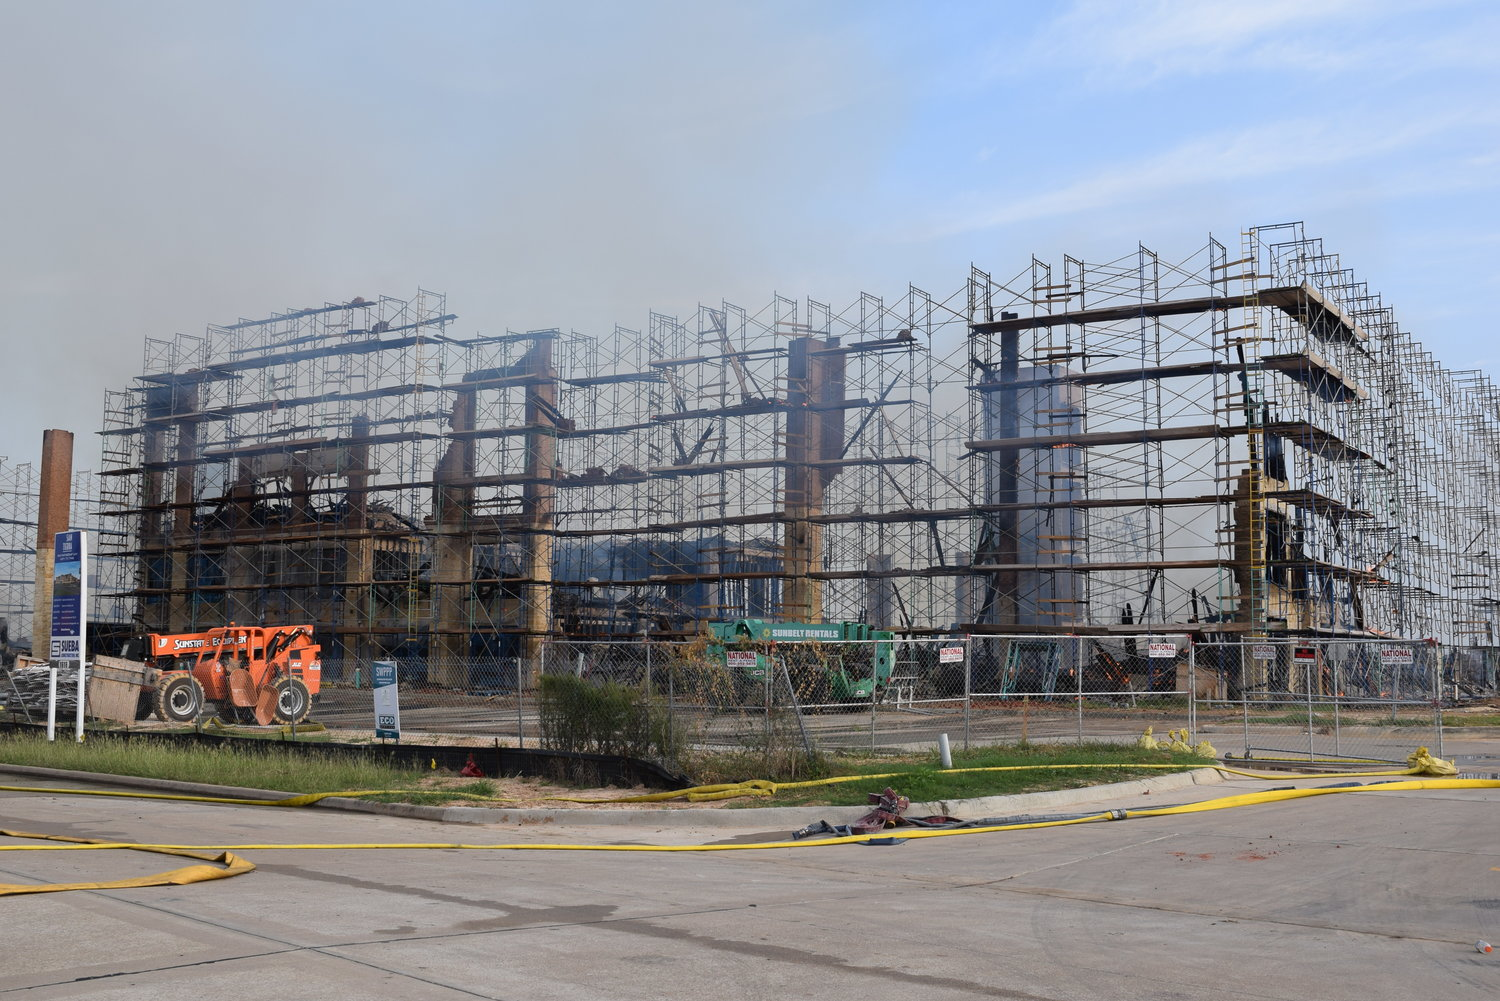 The scaffolding around the site created an obstacle for firefighters concerned about fighting the blaze safely.